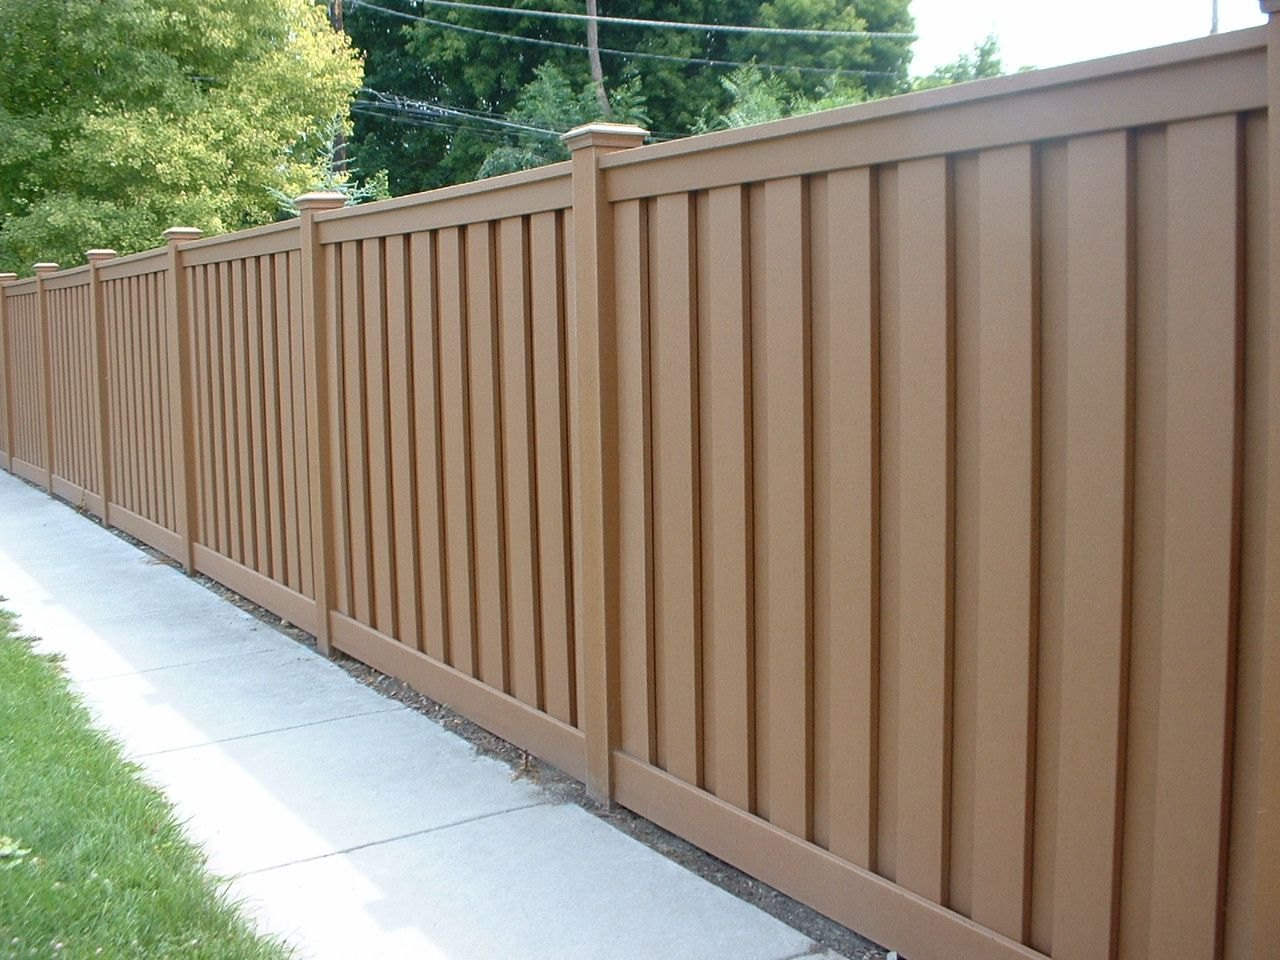 Patio Privacy Fence Wpc Cheap Fence Panels Wood Plastic Composite Outdoor Fence